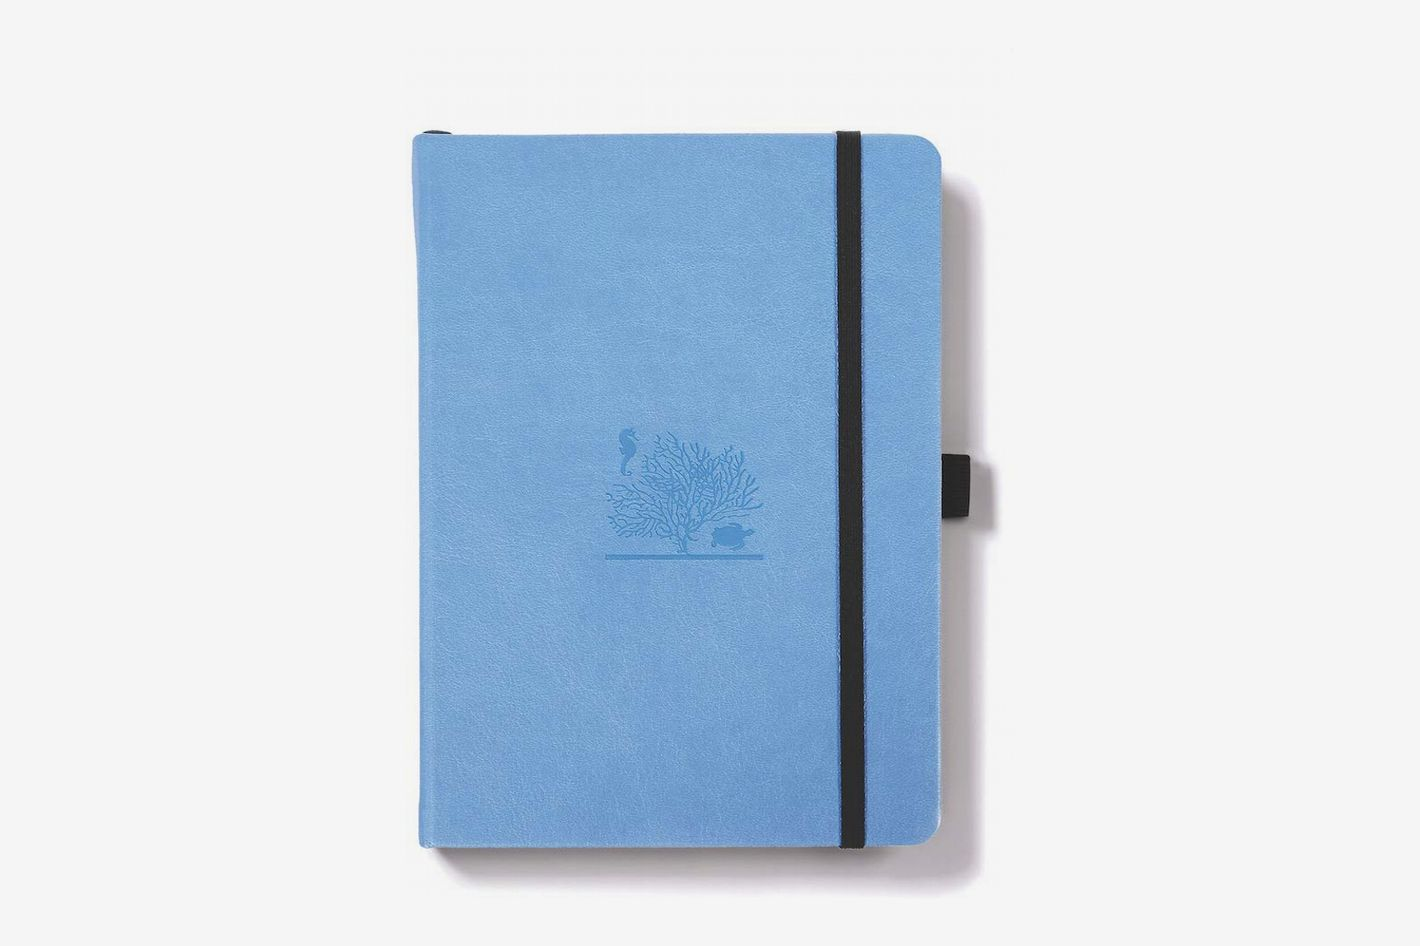 Dingbats Earth Medium A5+ Hardcover Notebook